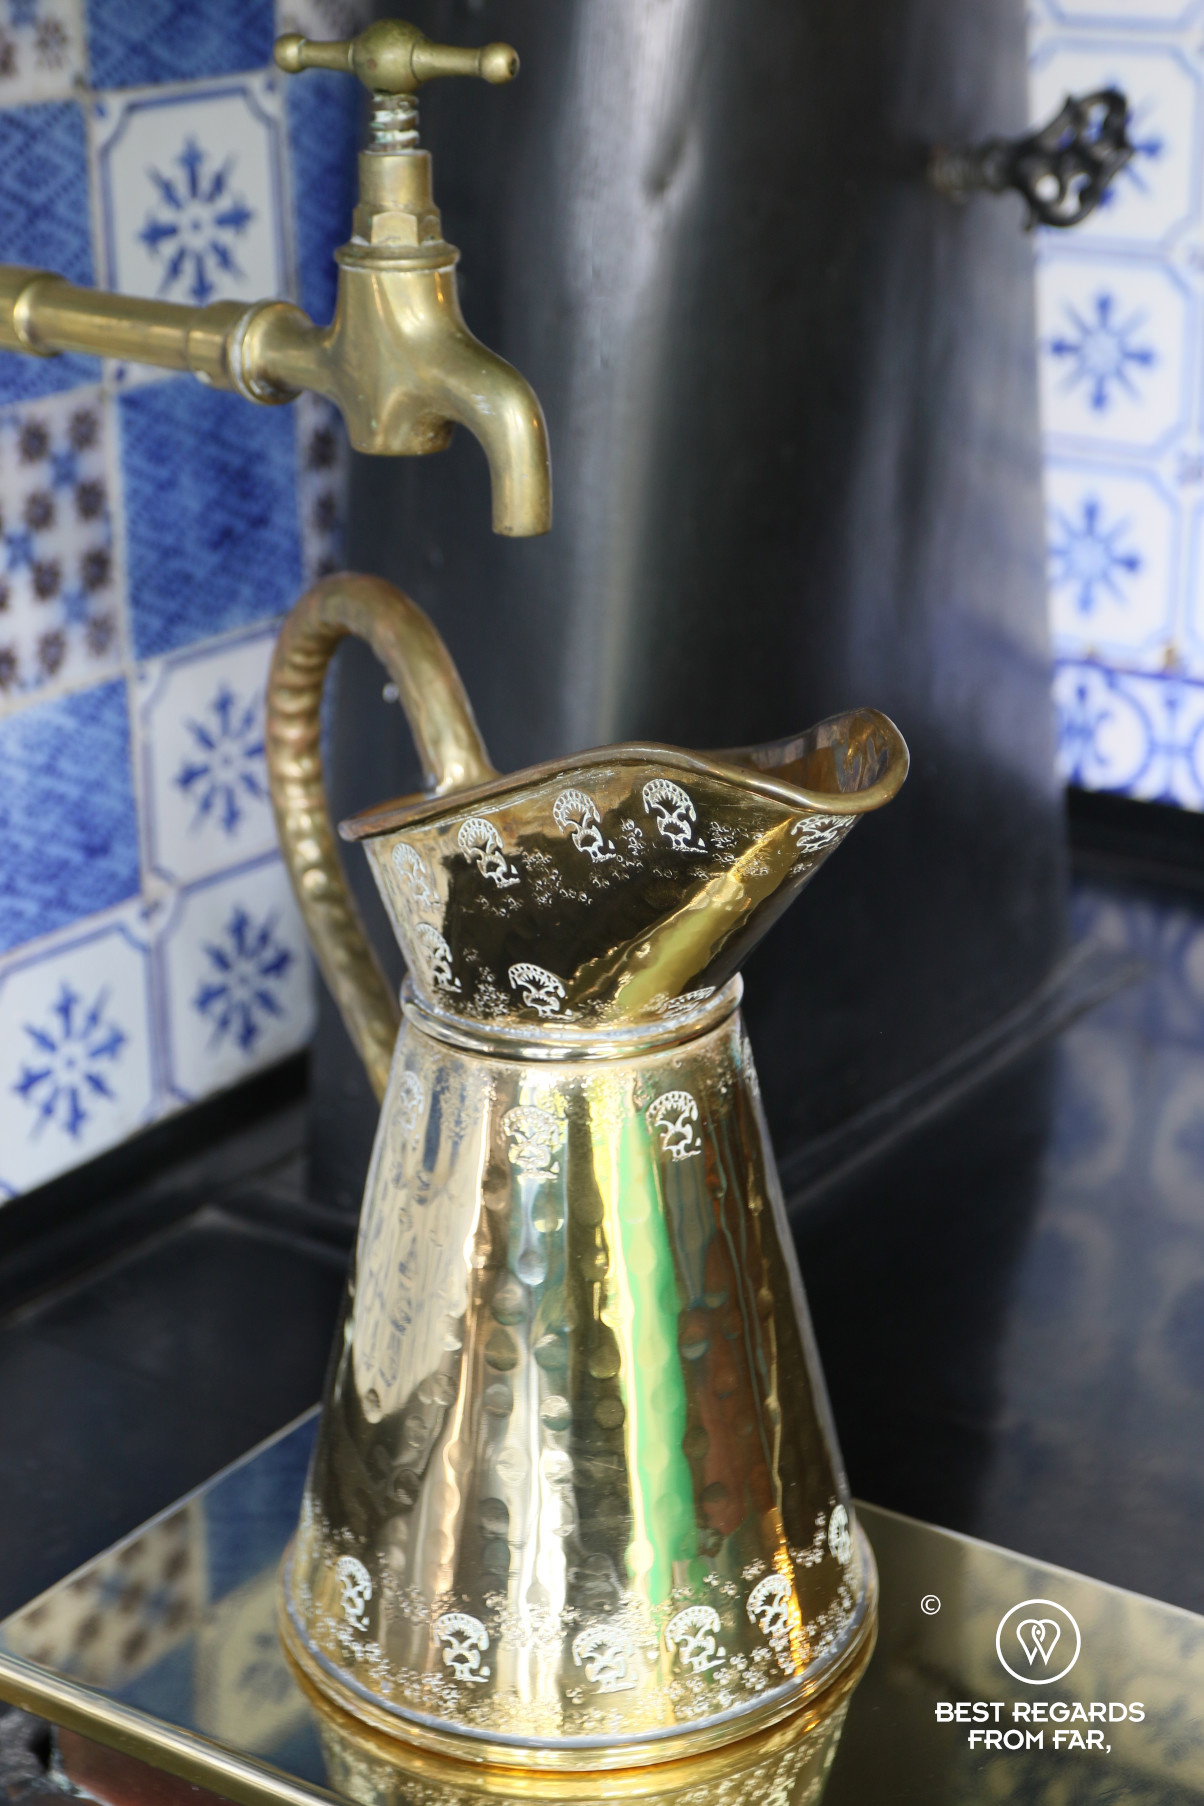 A copper jug in Claude Monet's kitchen in Giverny, France